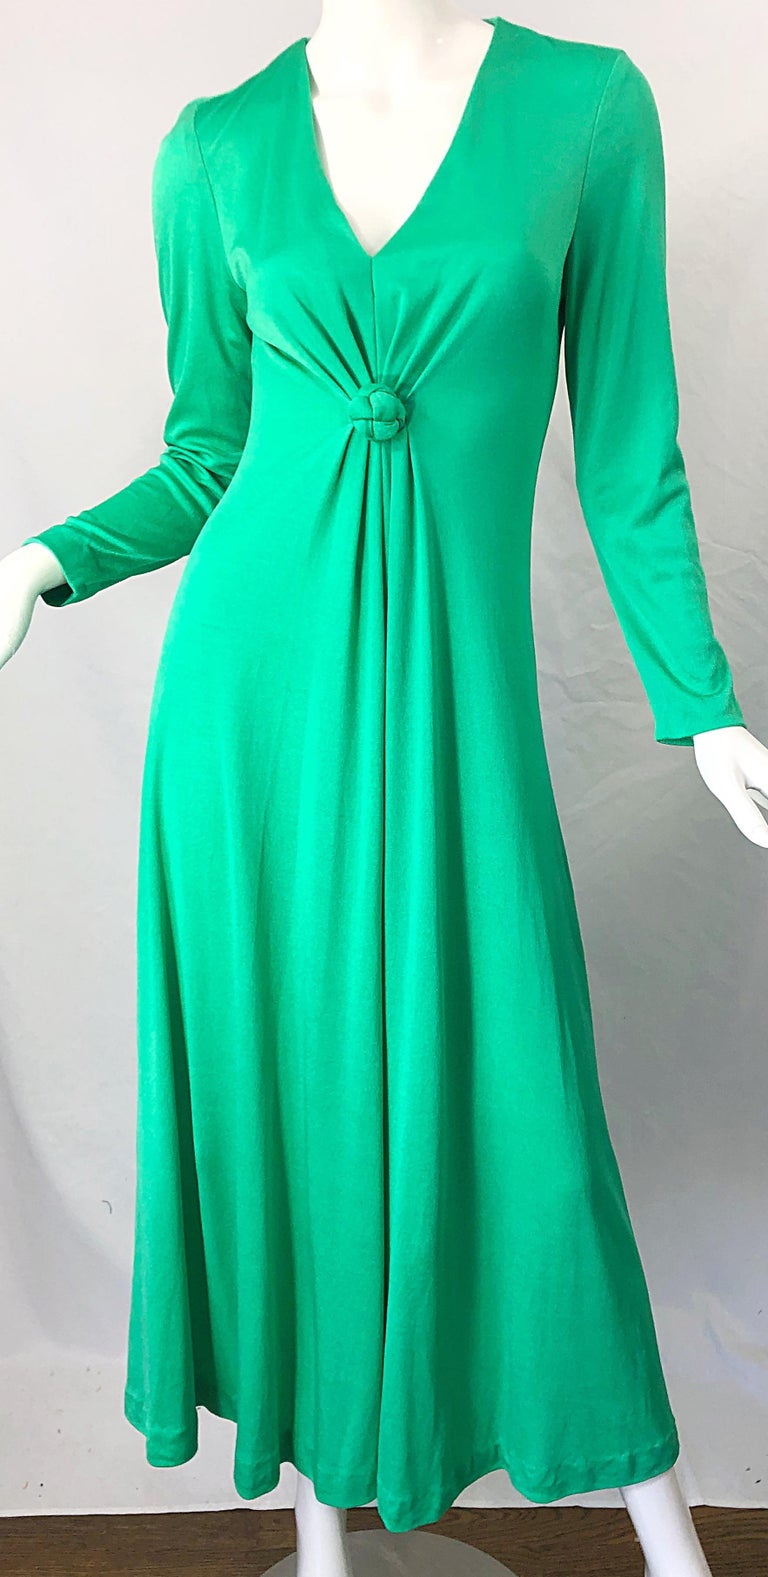 1970s Fredrick's of Hollywood Kelly Green Vintage Jersey 70s Maxi Dress For Sale 5